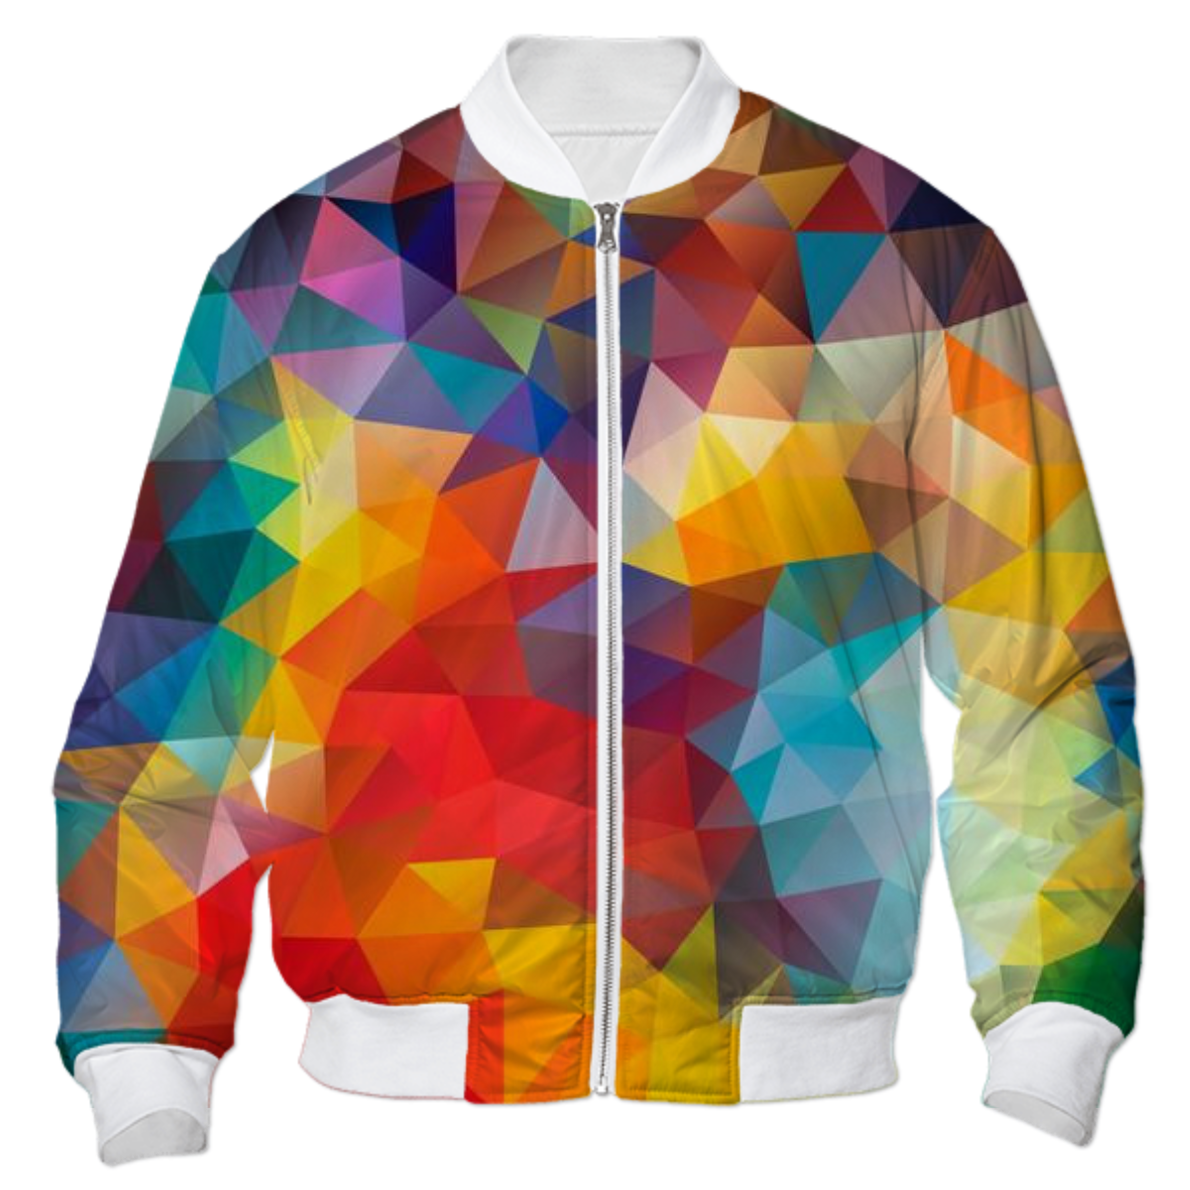 Shop POLYGON, TRIANGLES, PATTERN, MULTI COLOR, COLORFUL, RAINBOW ...